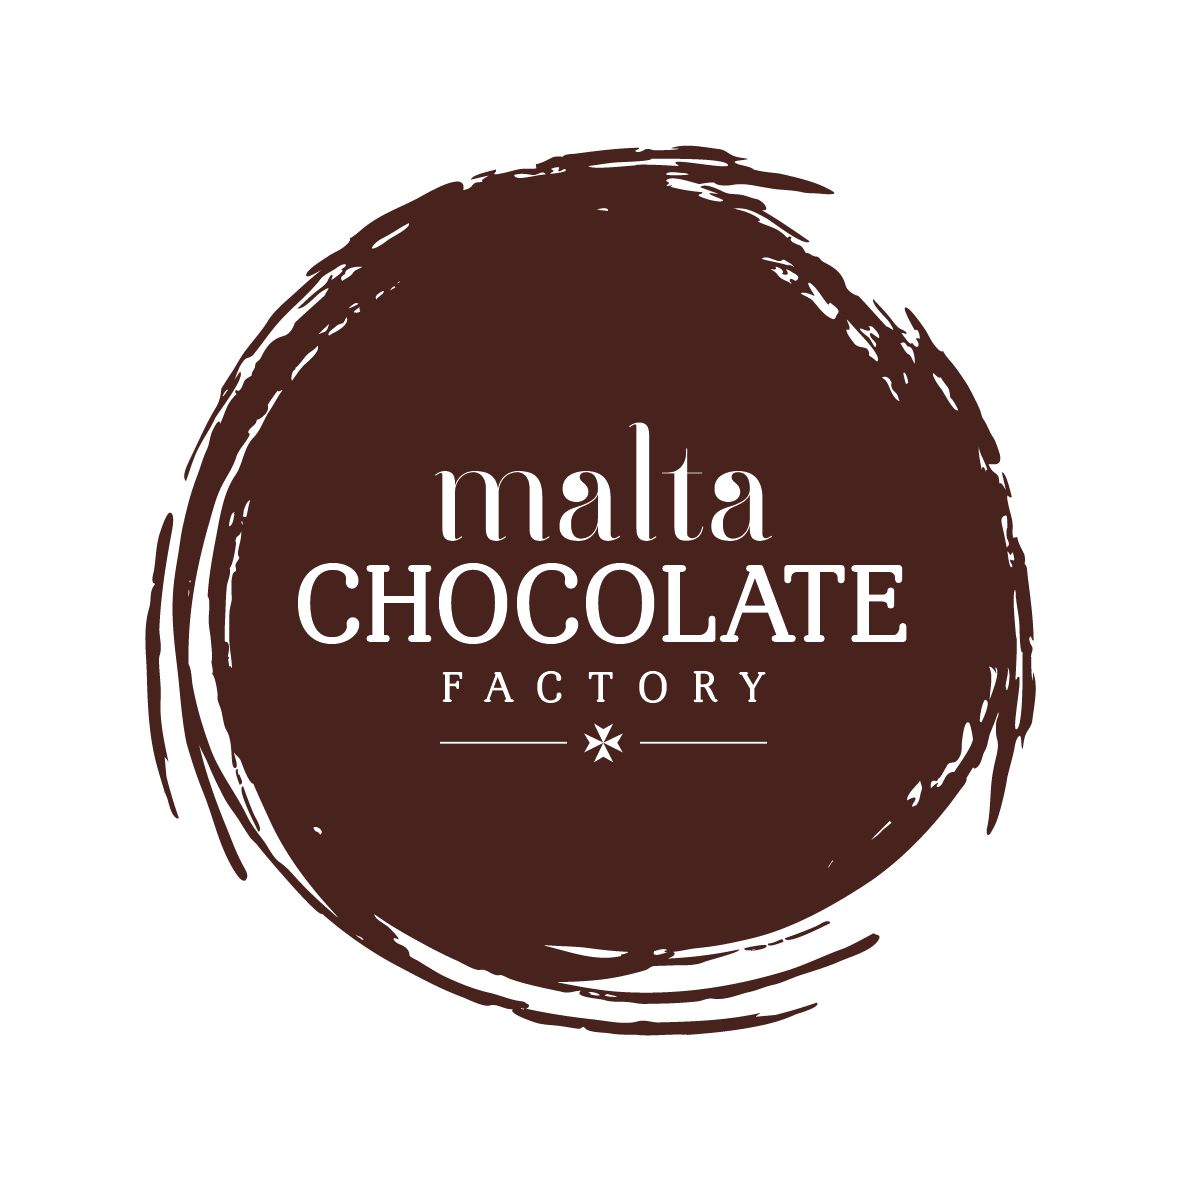 A Chocolate Factory